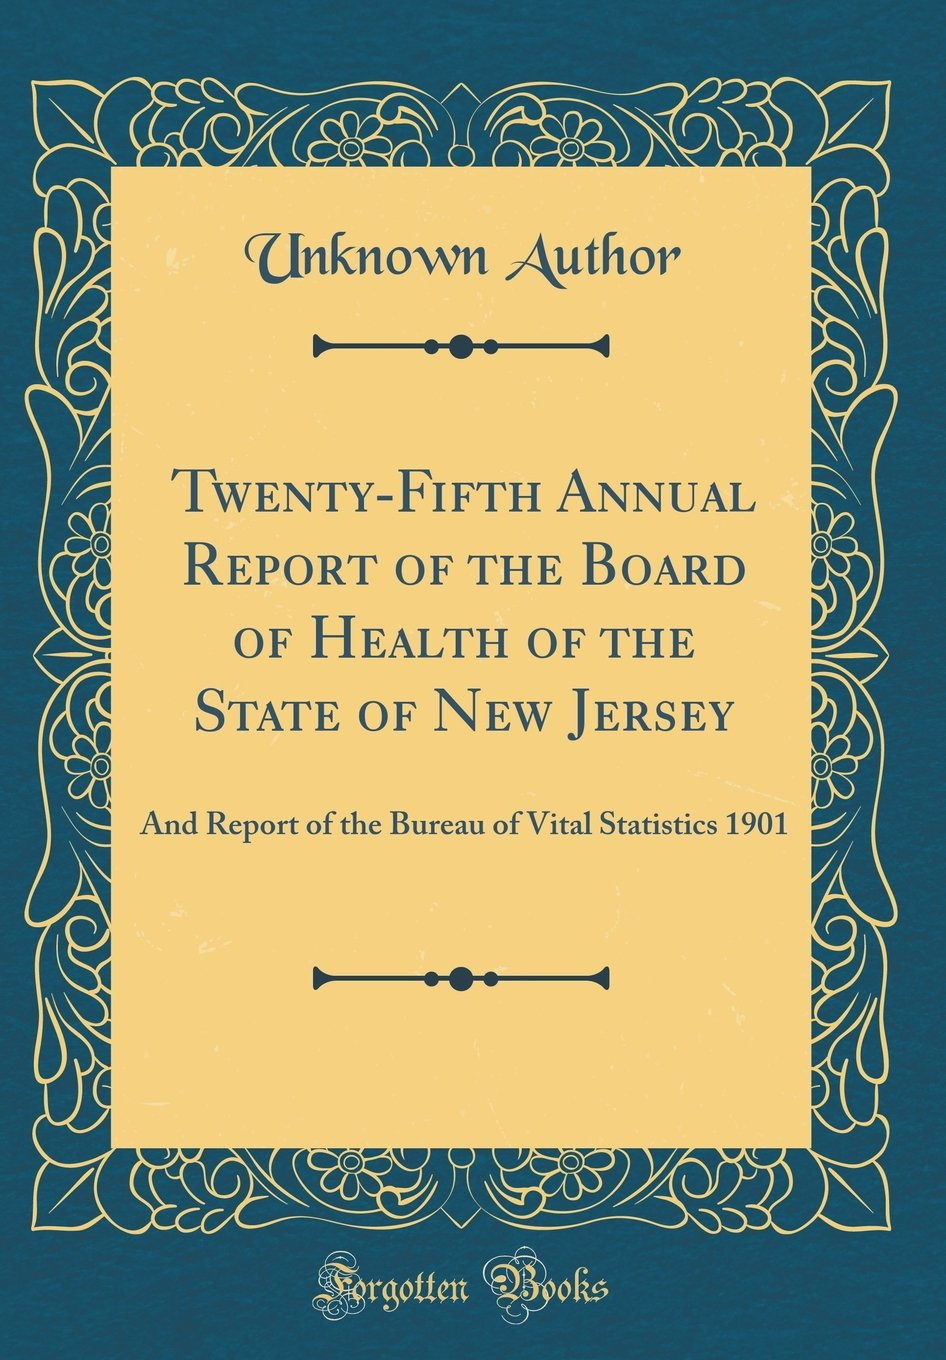 Download Twenty-Fifth Annual Report of the Board of Health of the State of New Jersey: And Report of the Bureau of Vital Statistics 1901 (Classic Reprint) ebook